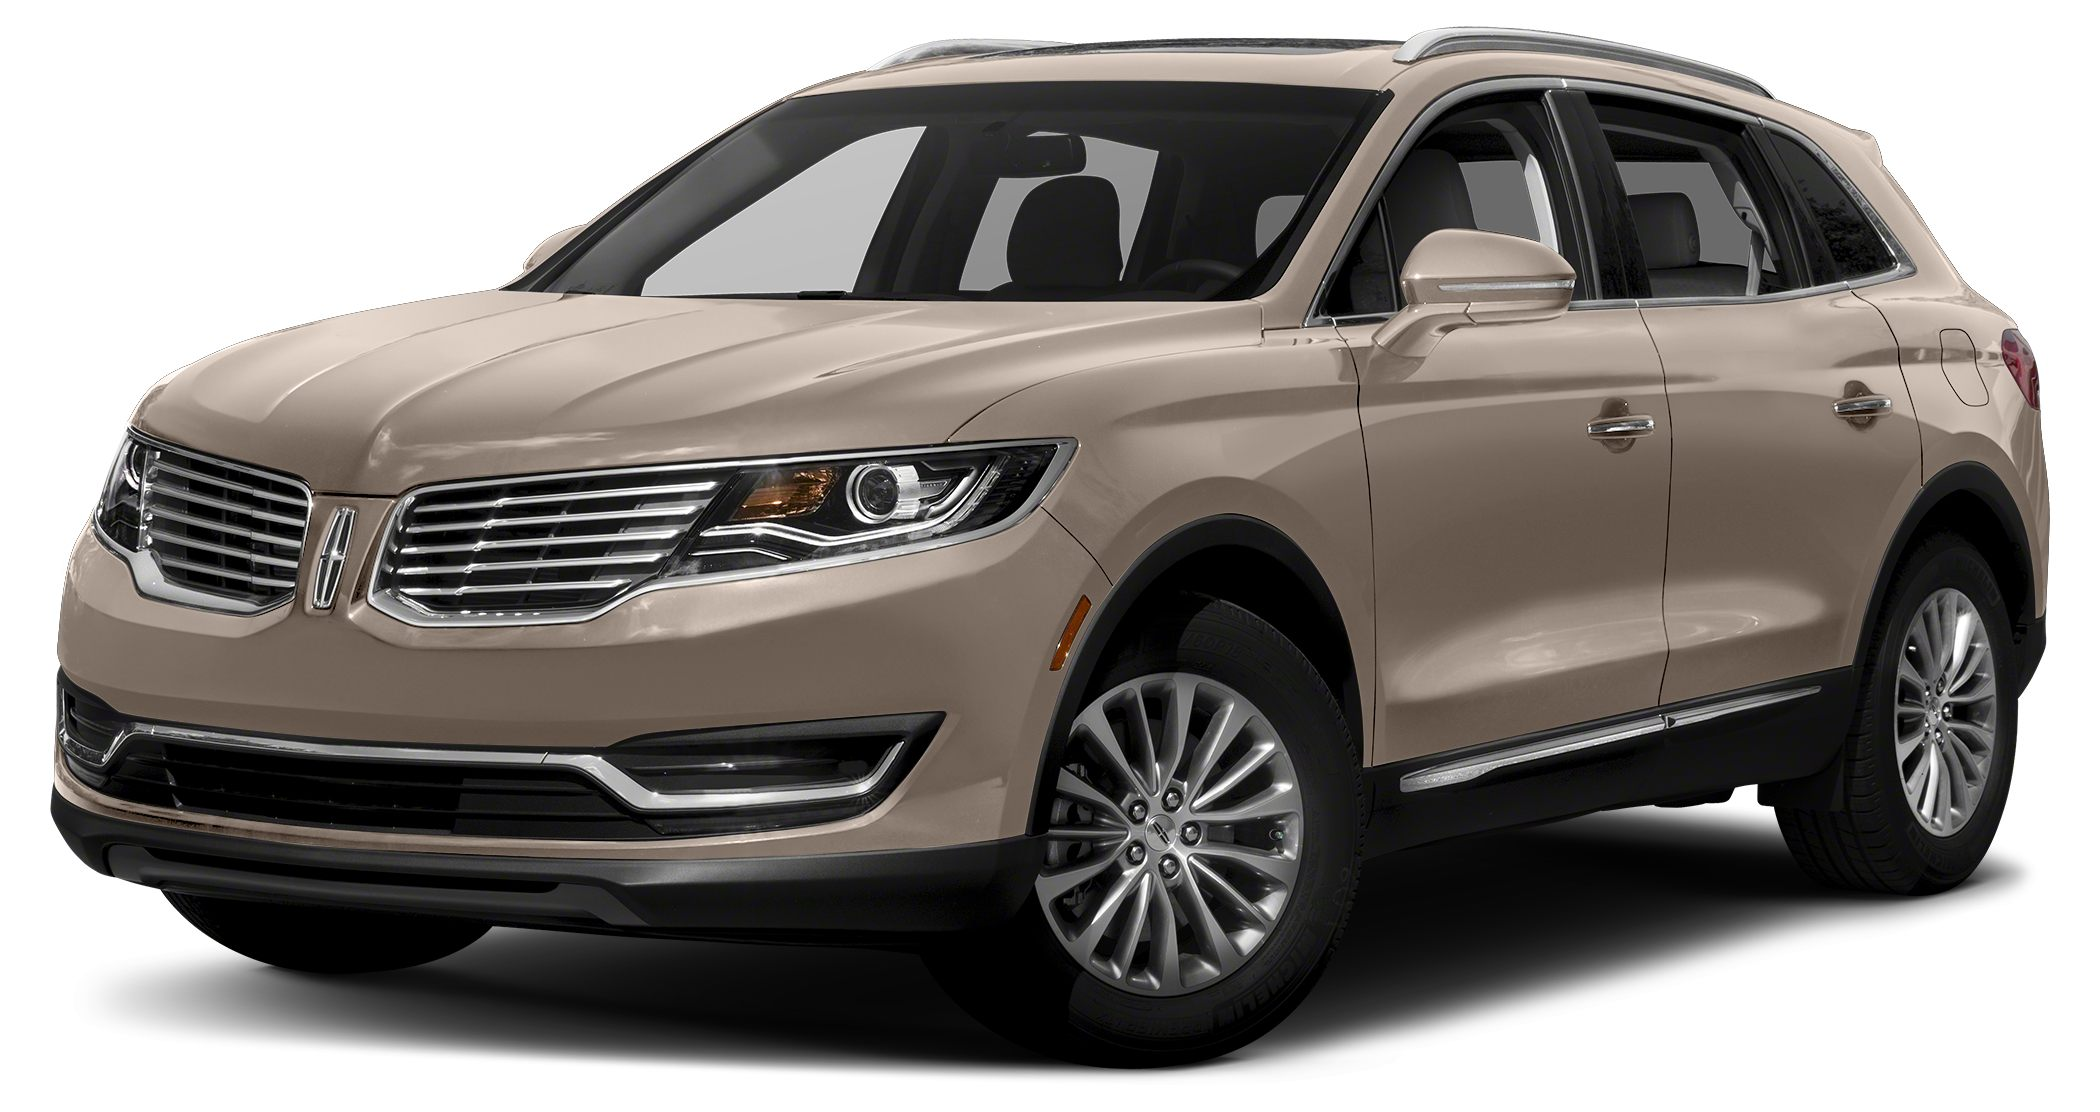 2016 Lincoln MKX Select Miles 4Color Allure Blue Stock 16X42 VIN 2LMTJ6KR3GBL66164